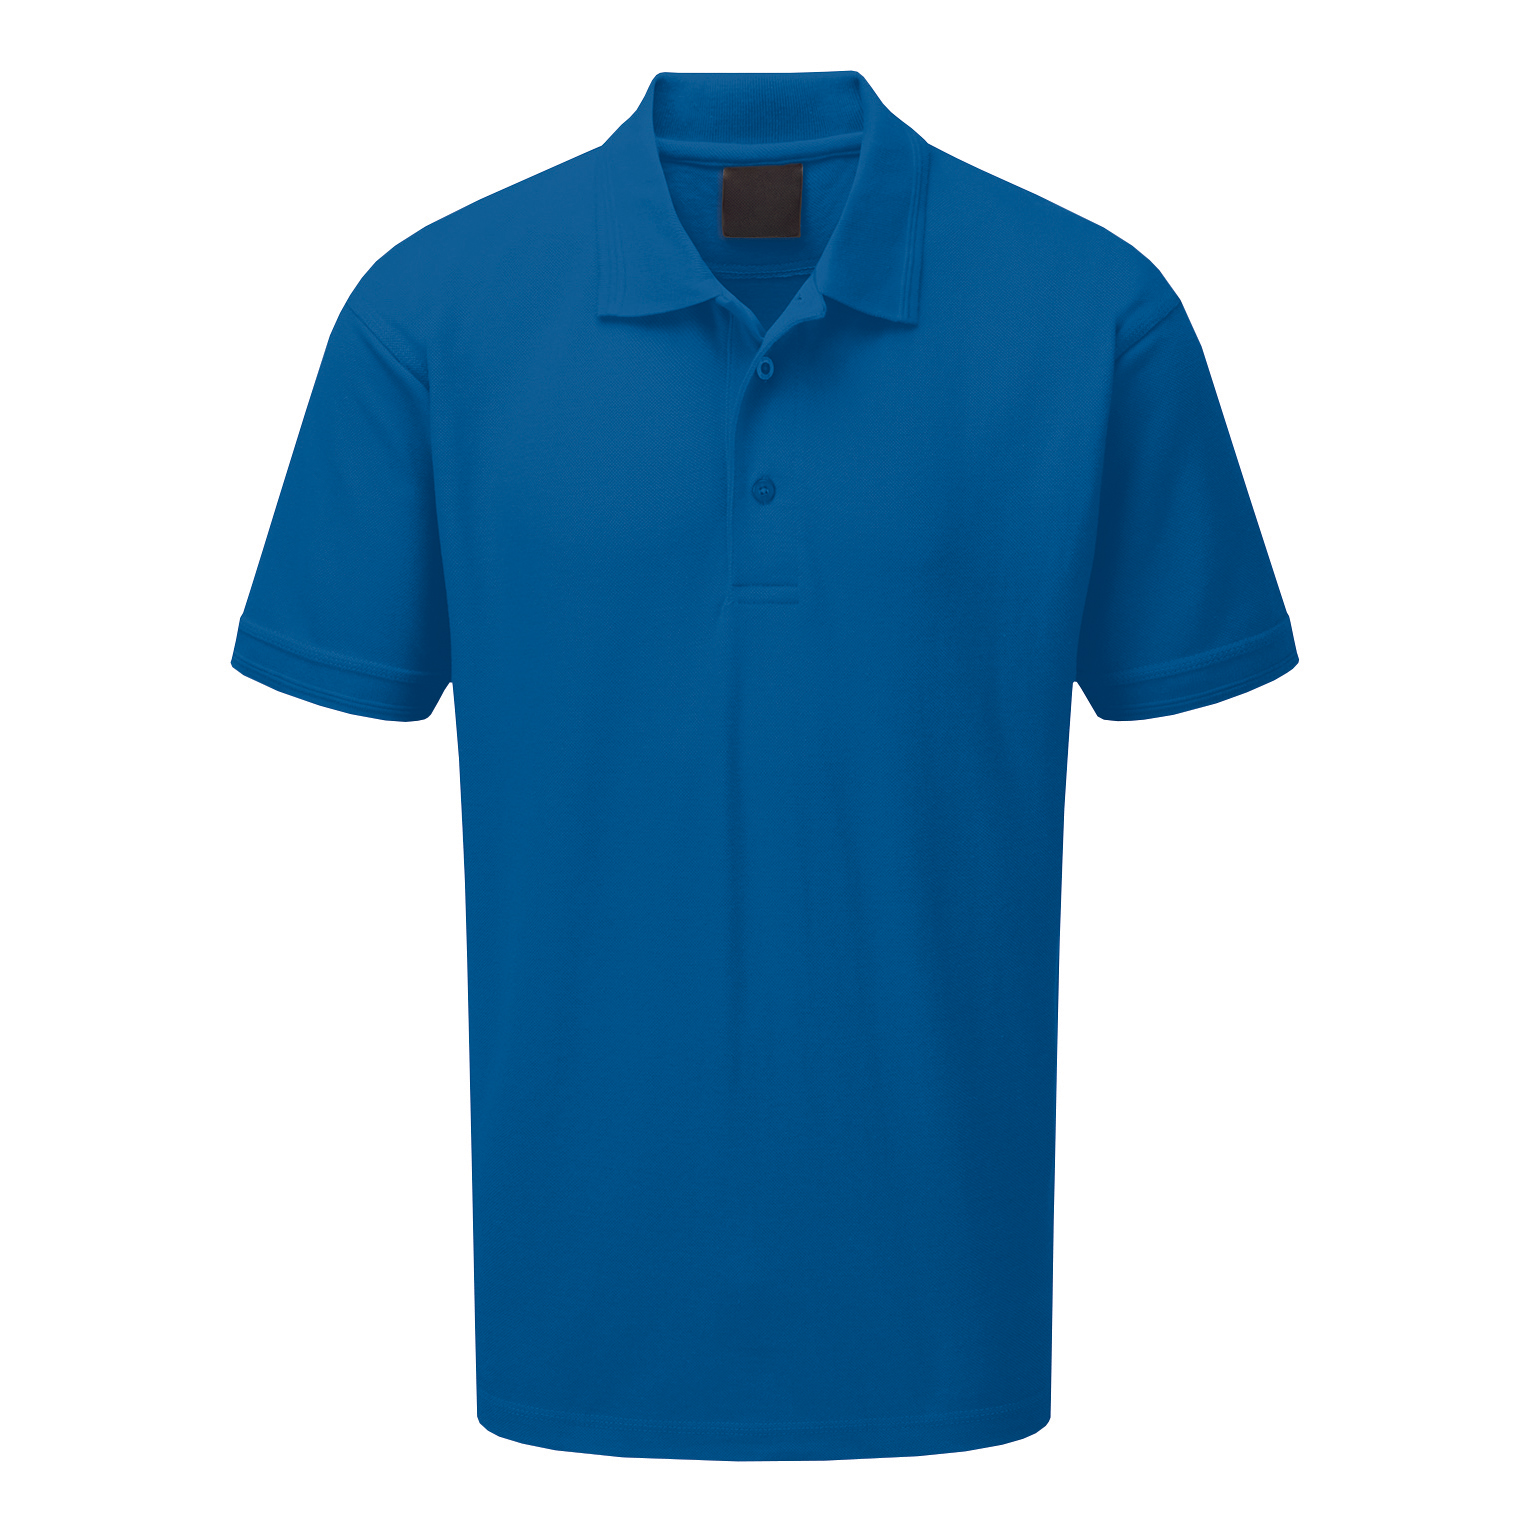 Premium Polo Triple Stitched 220gsm Medium Royal Blue